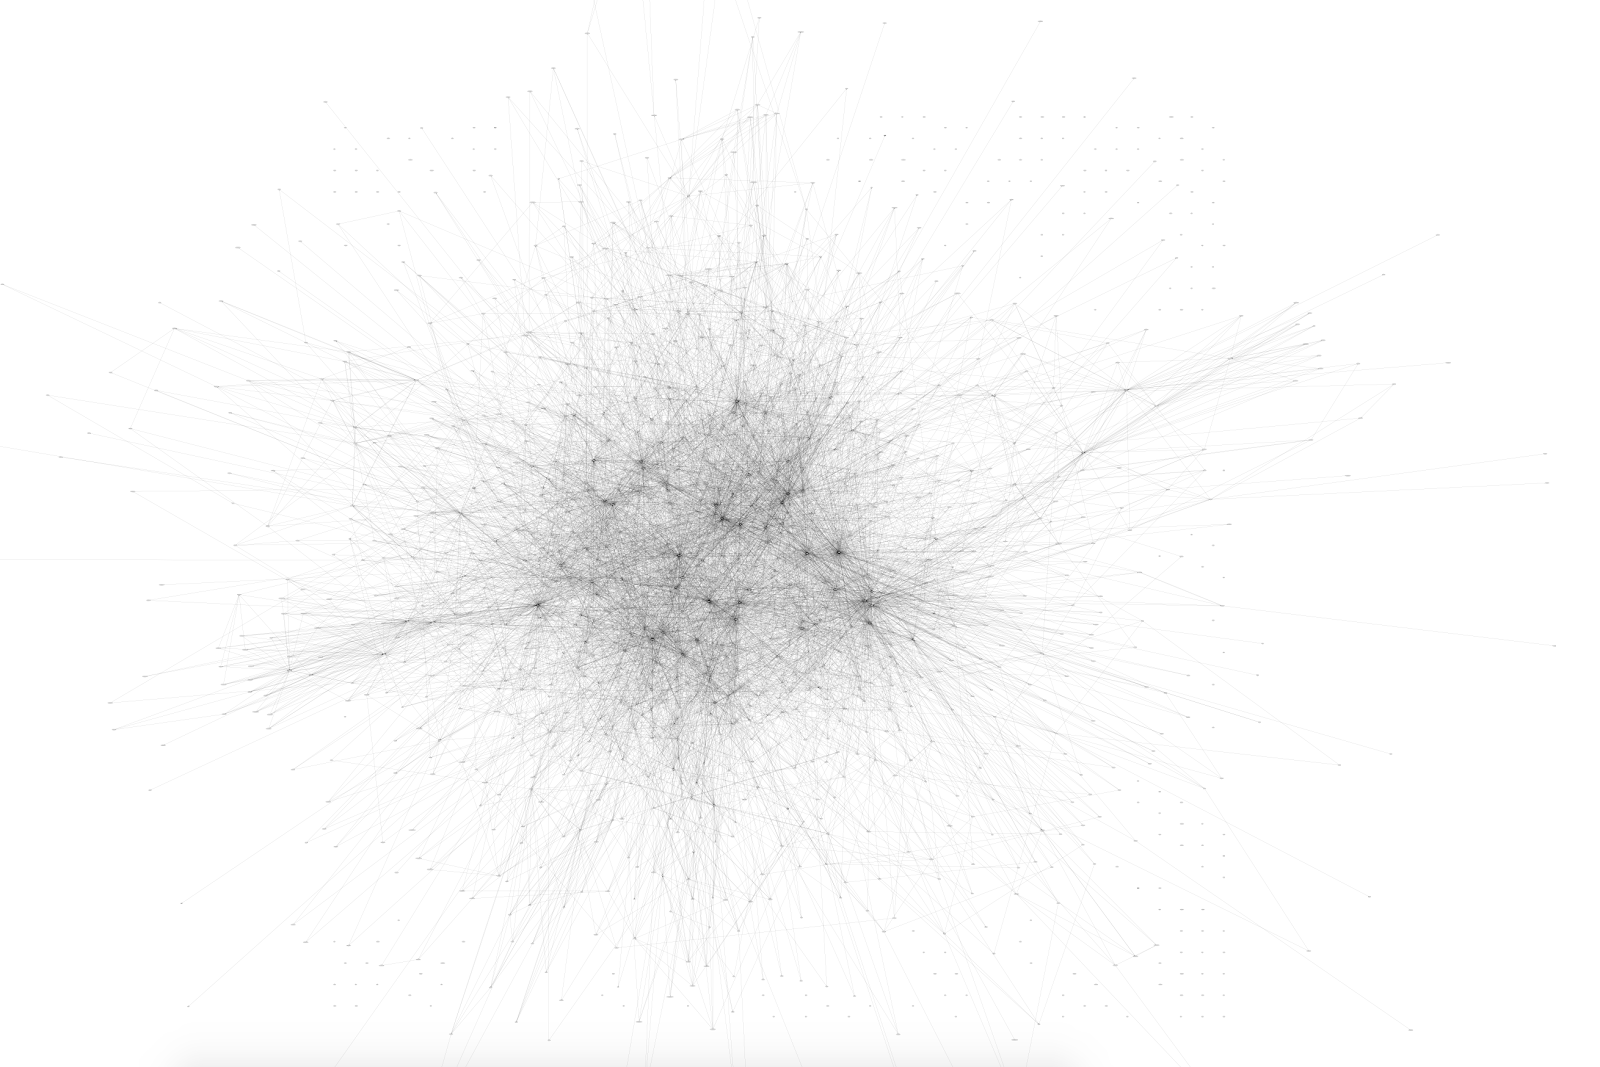 A picture of a huge dependency graph; there is still a tangle at the center but there are some other, more distinct groupings